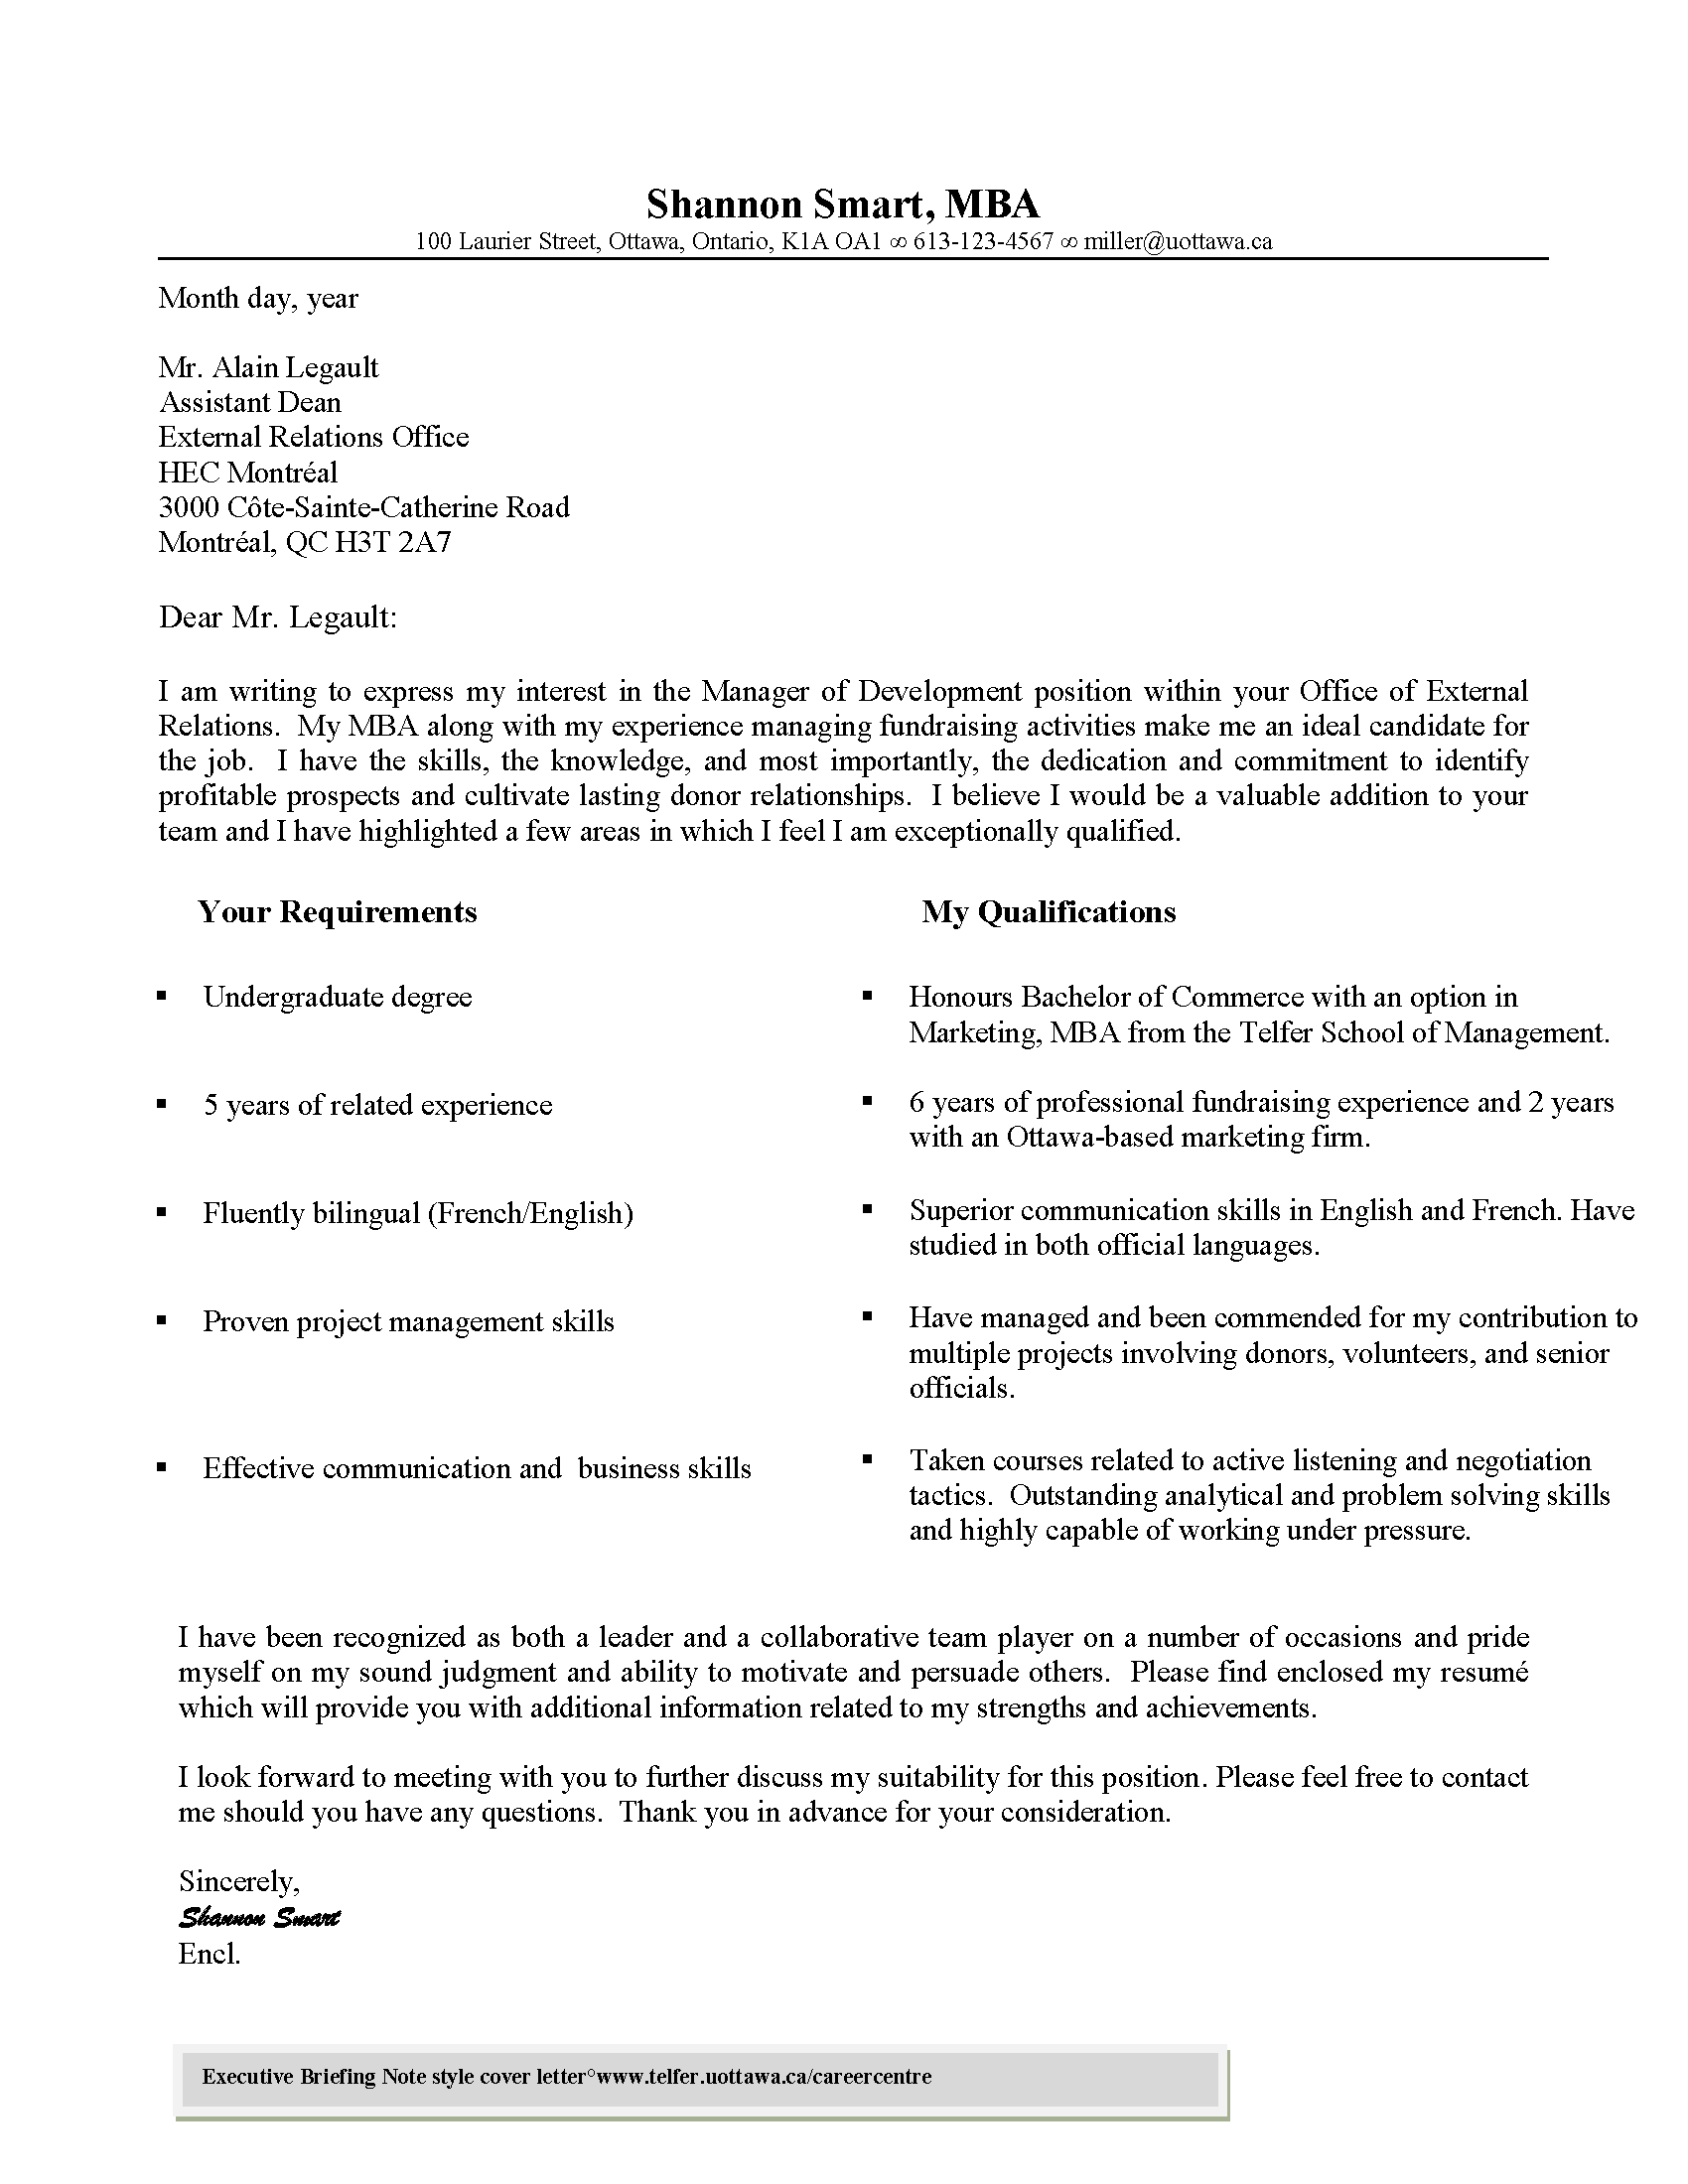 Cover Letter - Telfer School of Management